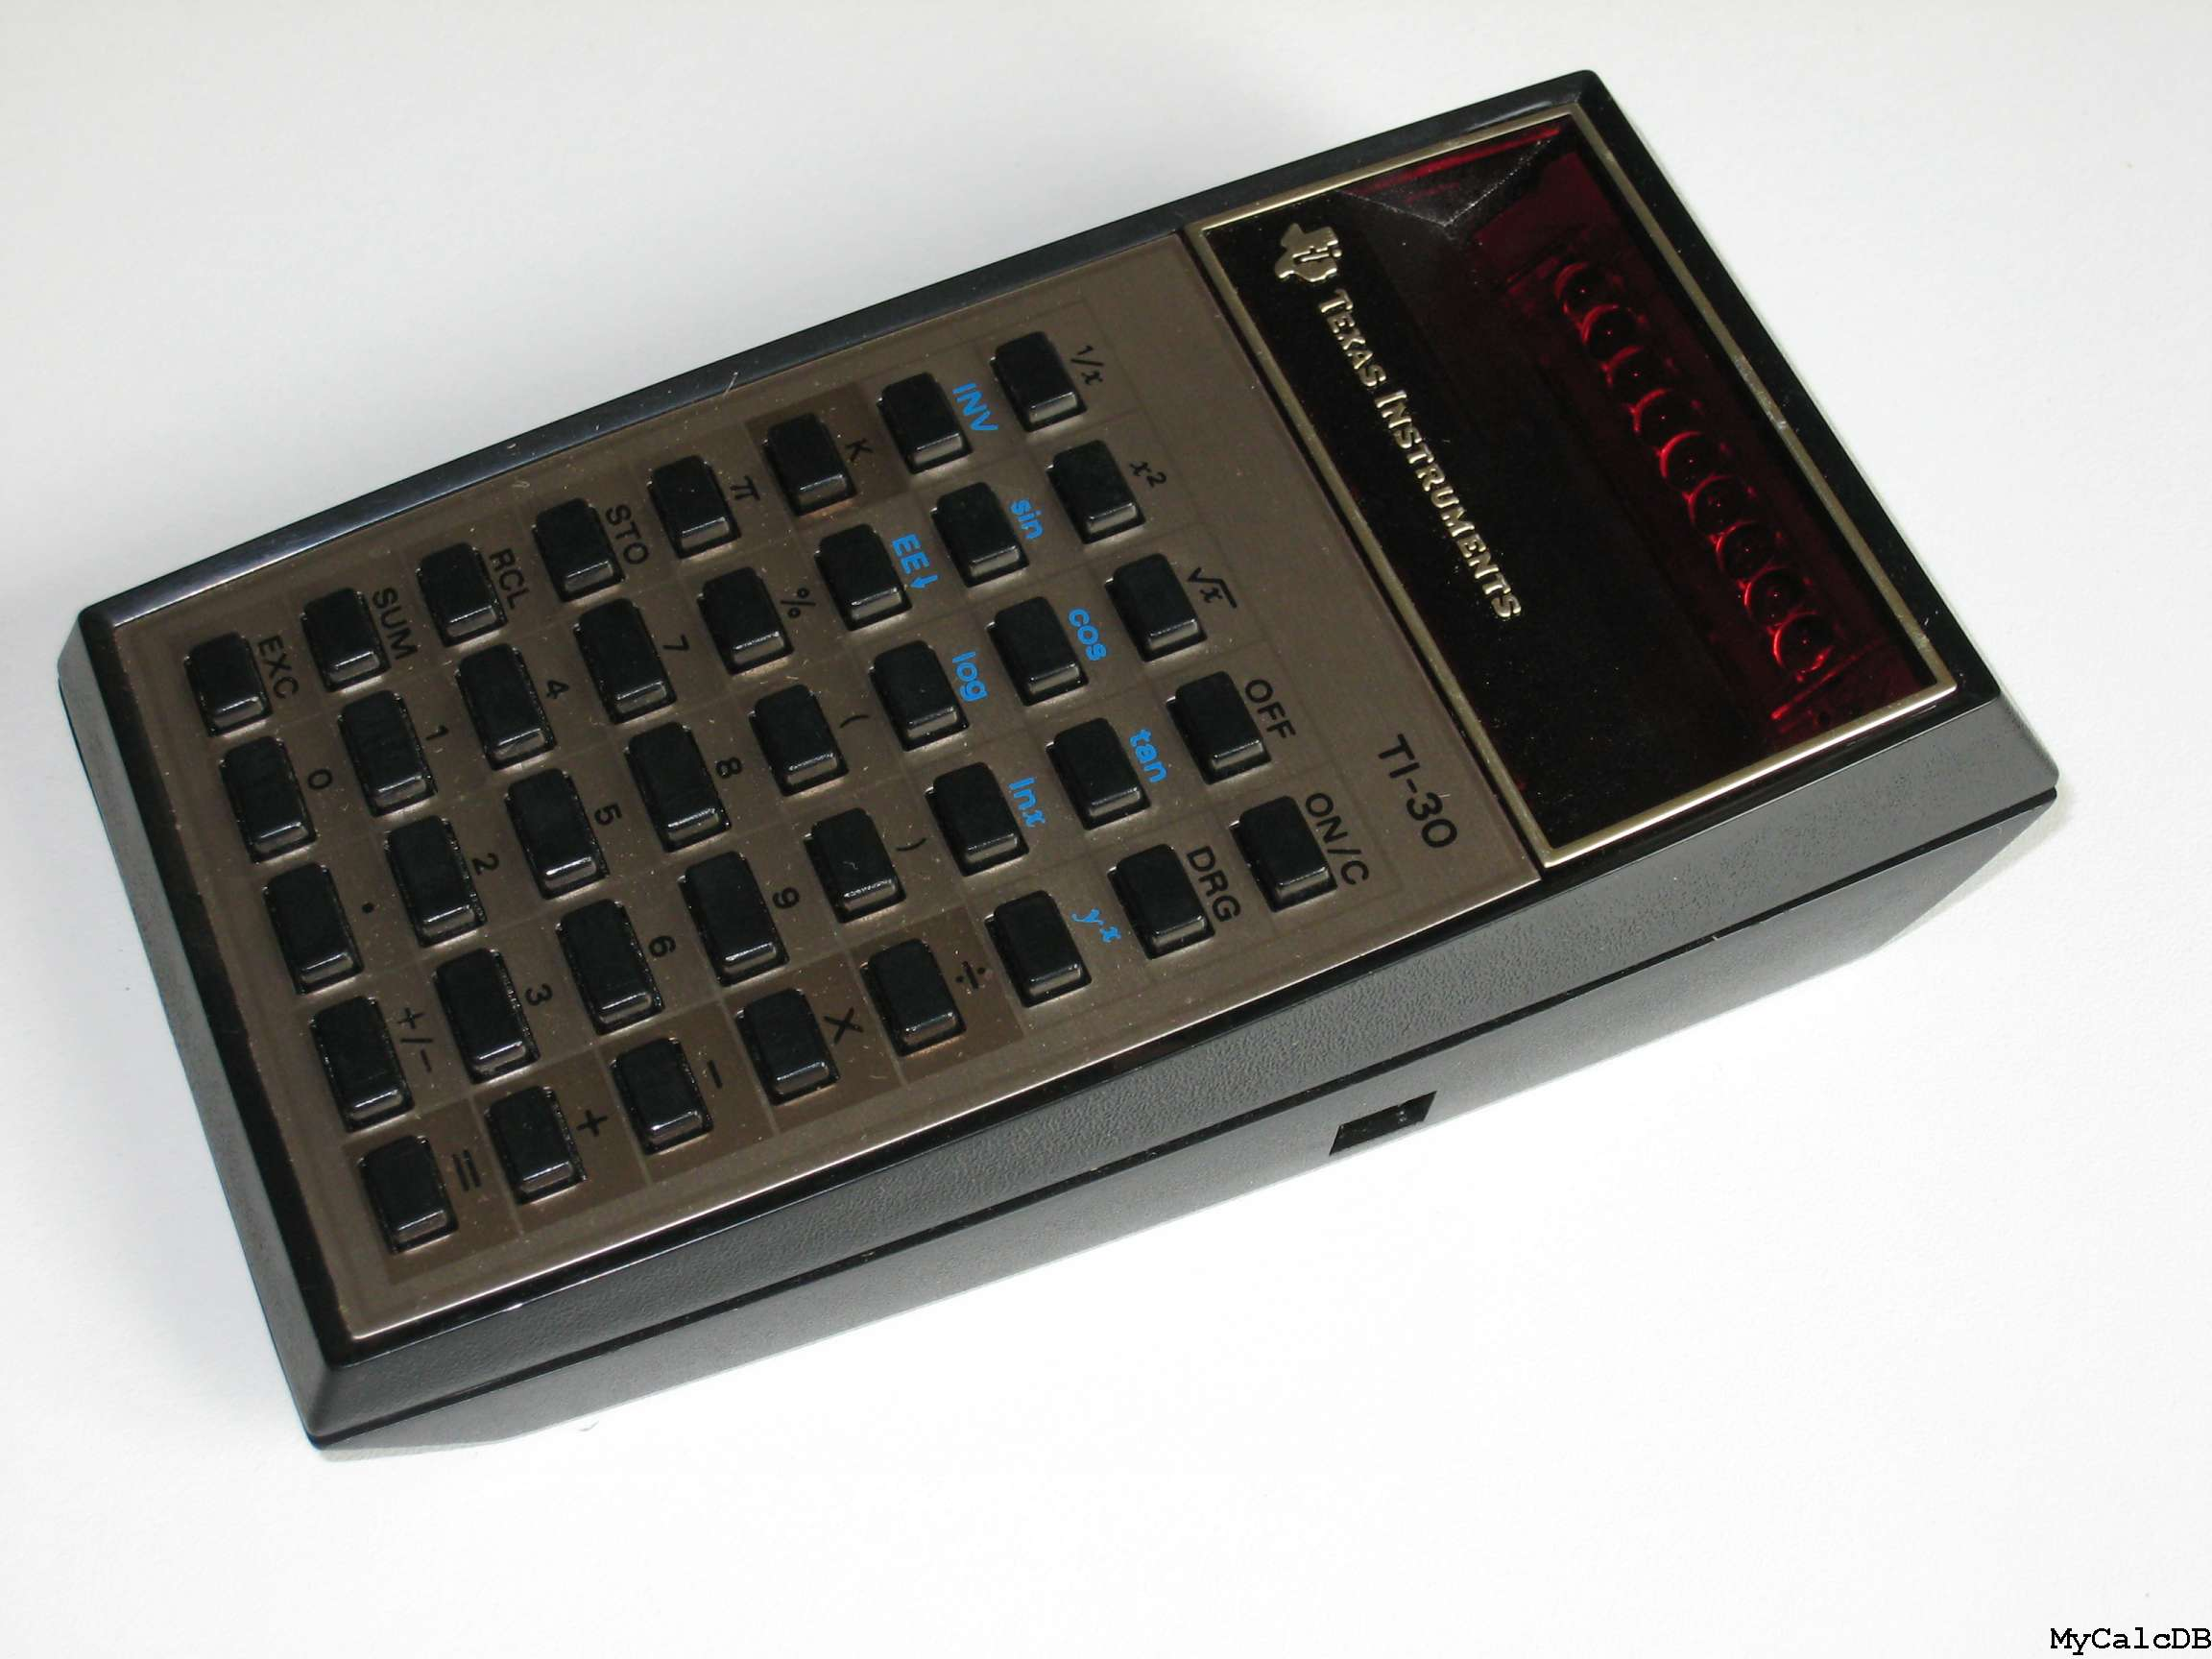 Texas Instruments TI-30